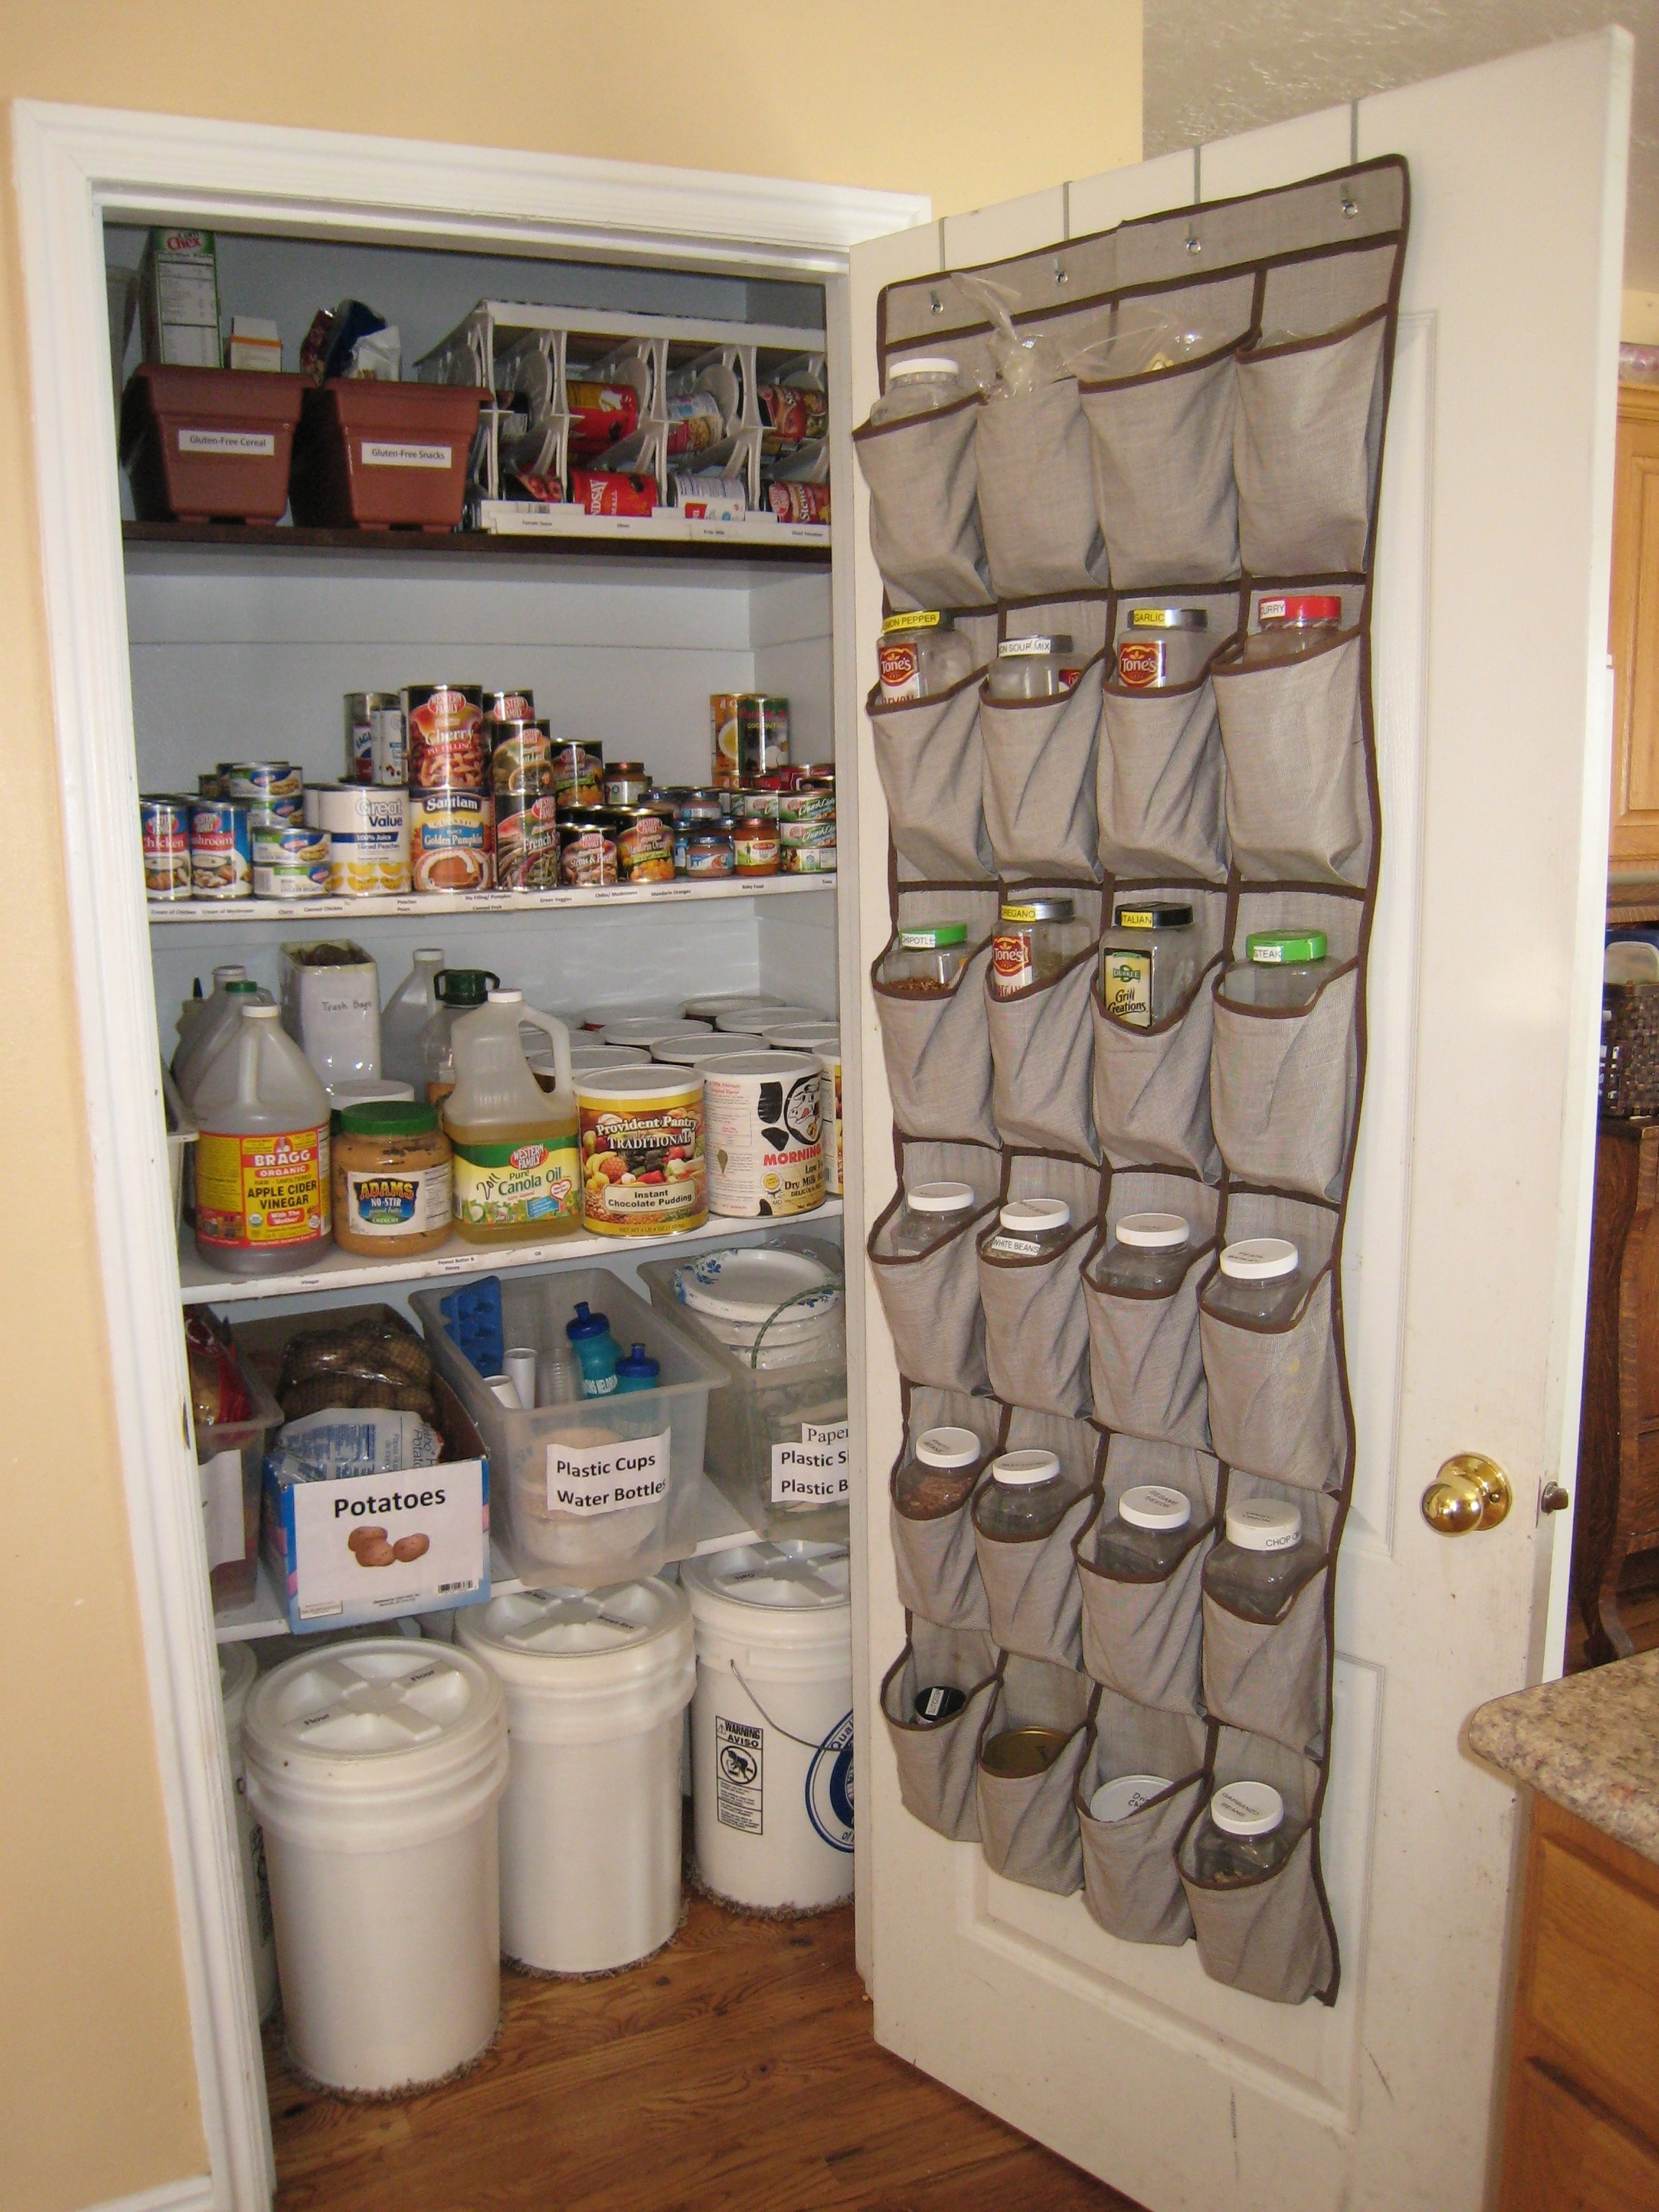 10 Wonderful Pantry Ideas For Small Kitchen amazing of kitchen pantry organization ideas pantry organization how 2020